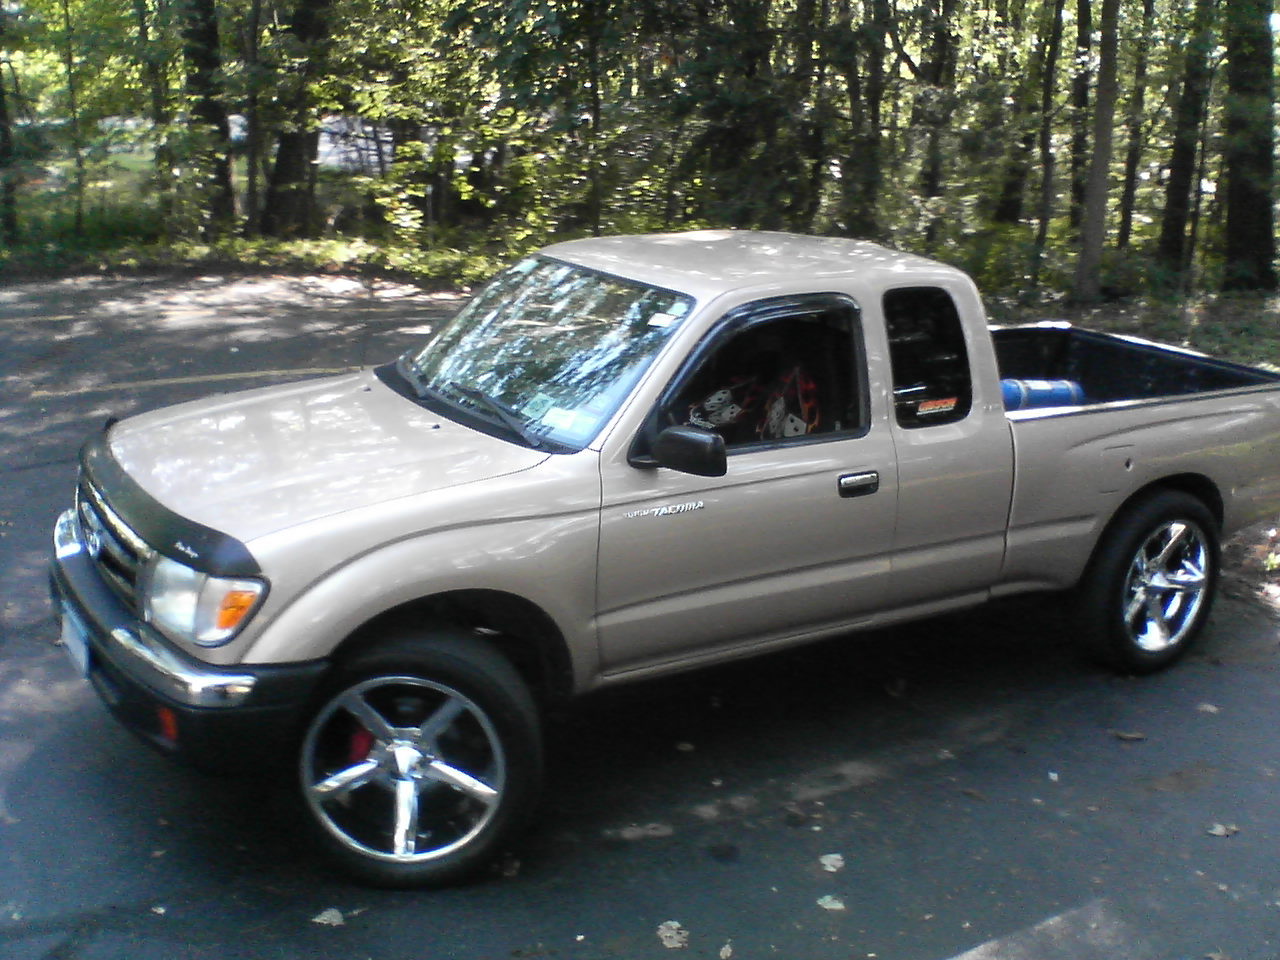 hight resolution of 1999 toyota tacoma sr5 4x4 3 4l v6 supercharged